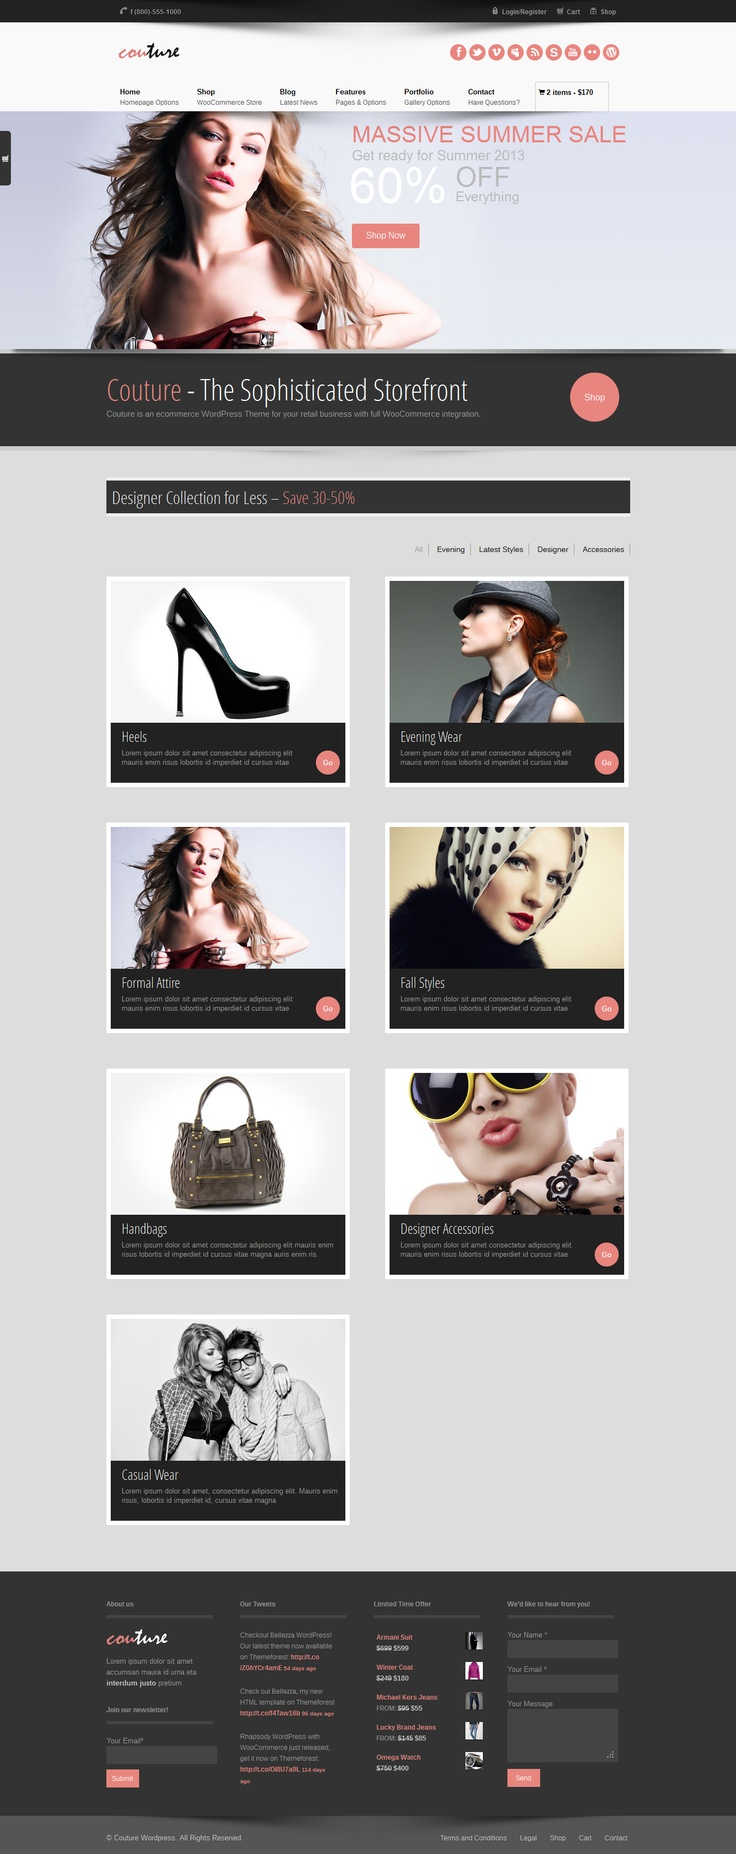 Couture WordPress WooCommerce Theme  #wordpress #theme #website #template #responsive #design #webdesign #flat #flatdesign #ecommerce #shop #woocommerce